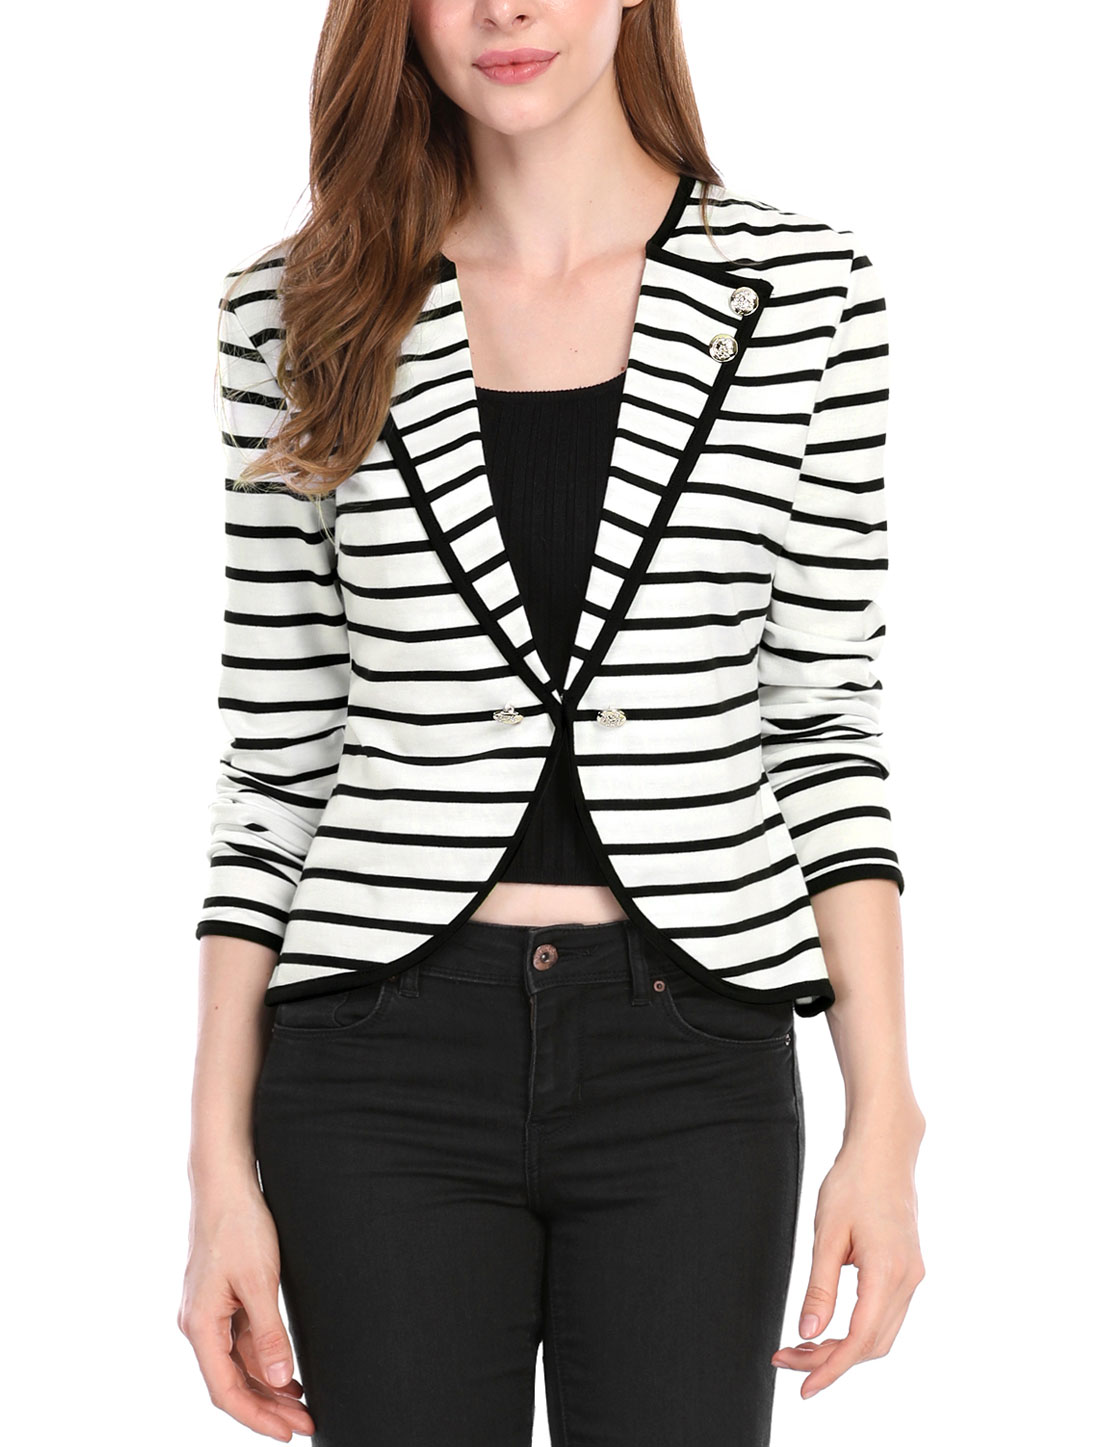 Women Notched Lapel Long Sleeve Design Fashion Black White Striped Blazer XL